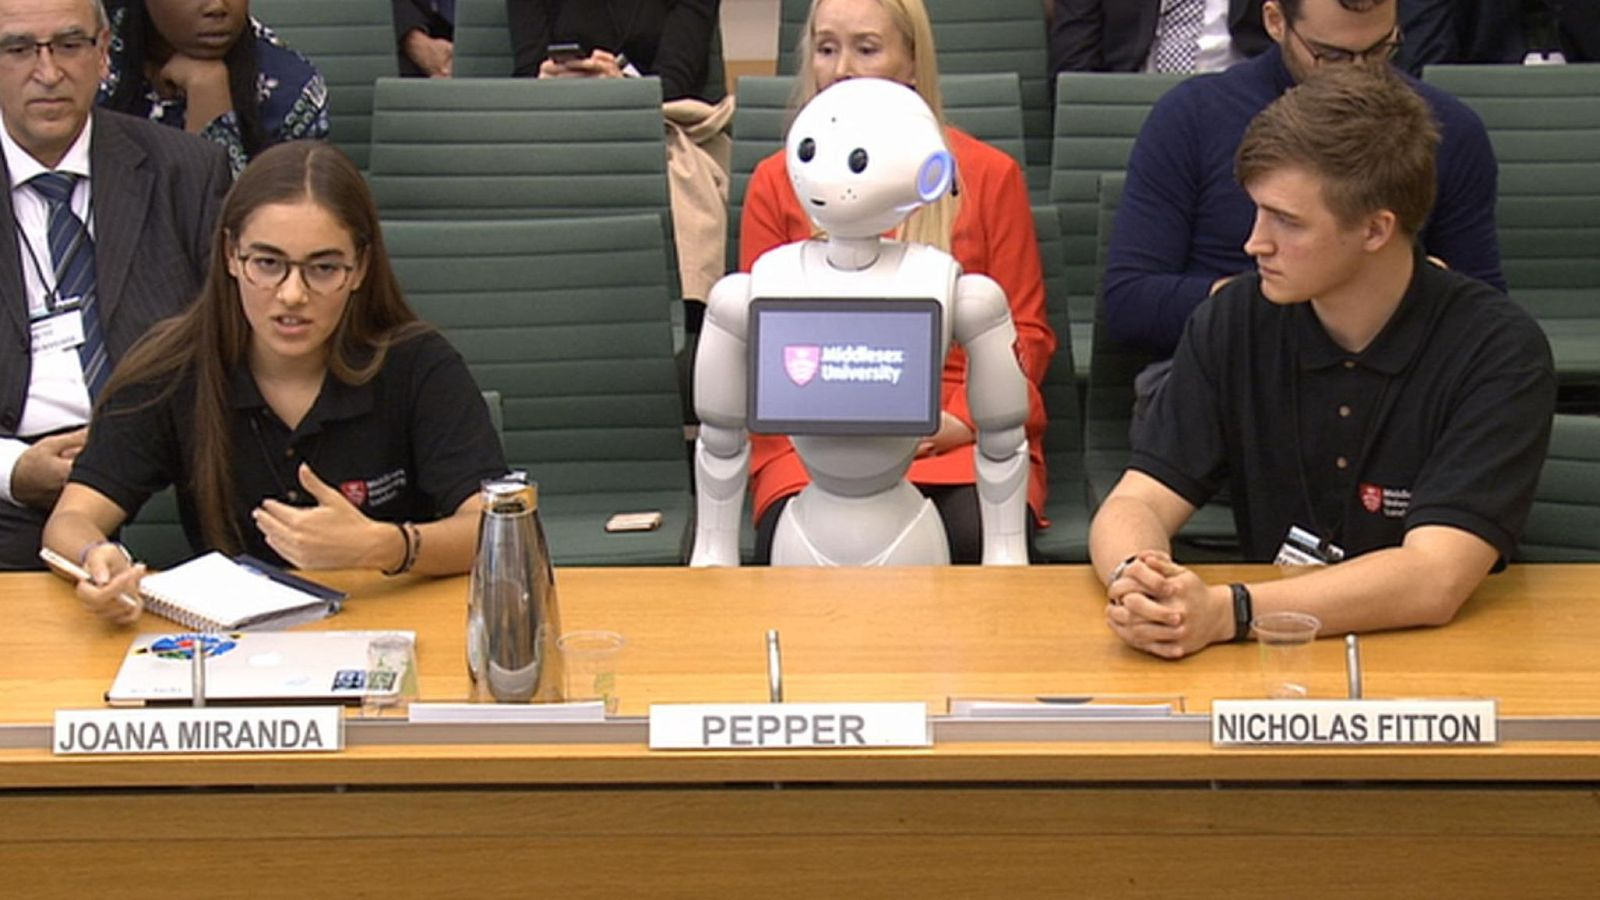 Pepper becomes the first robot to give evidence at the House of Commons